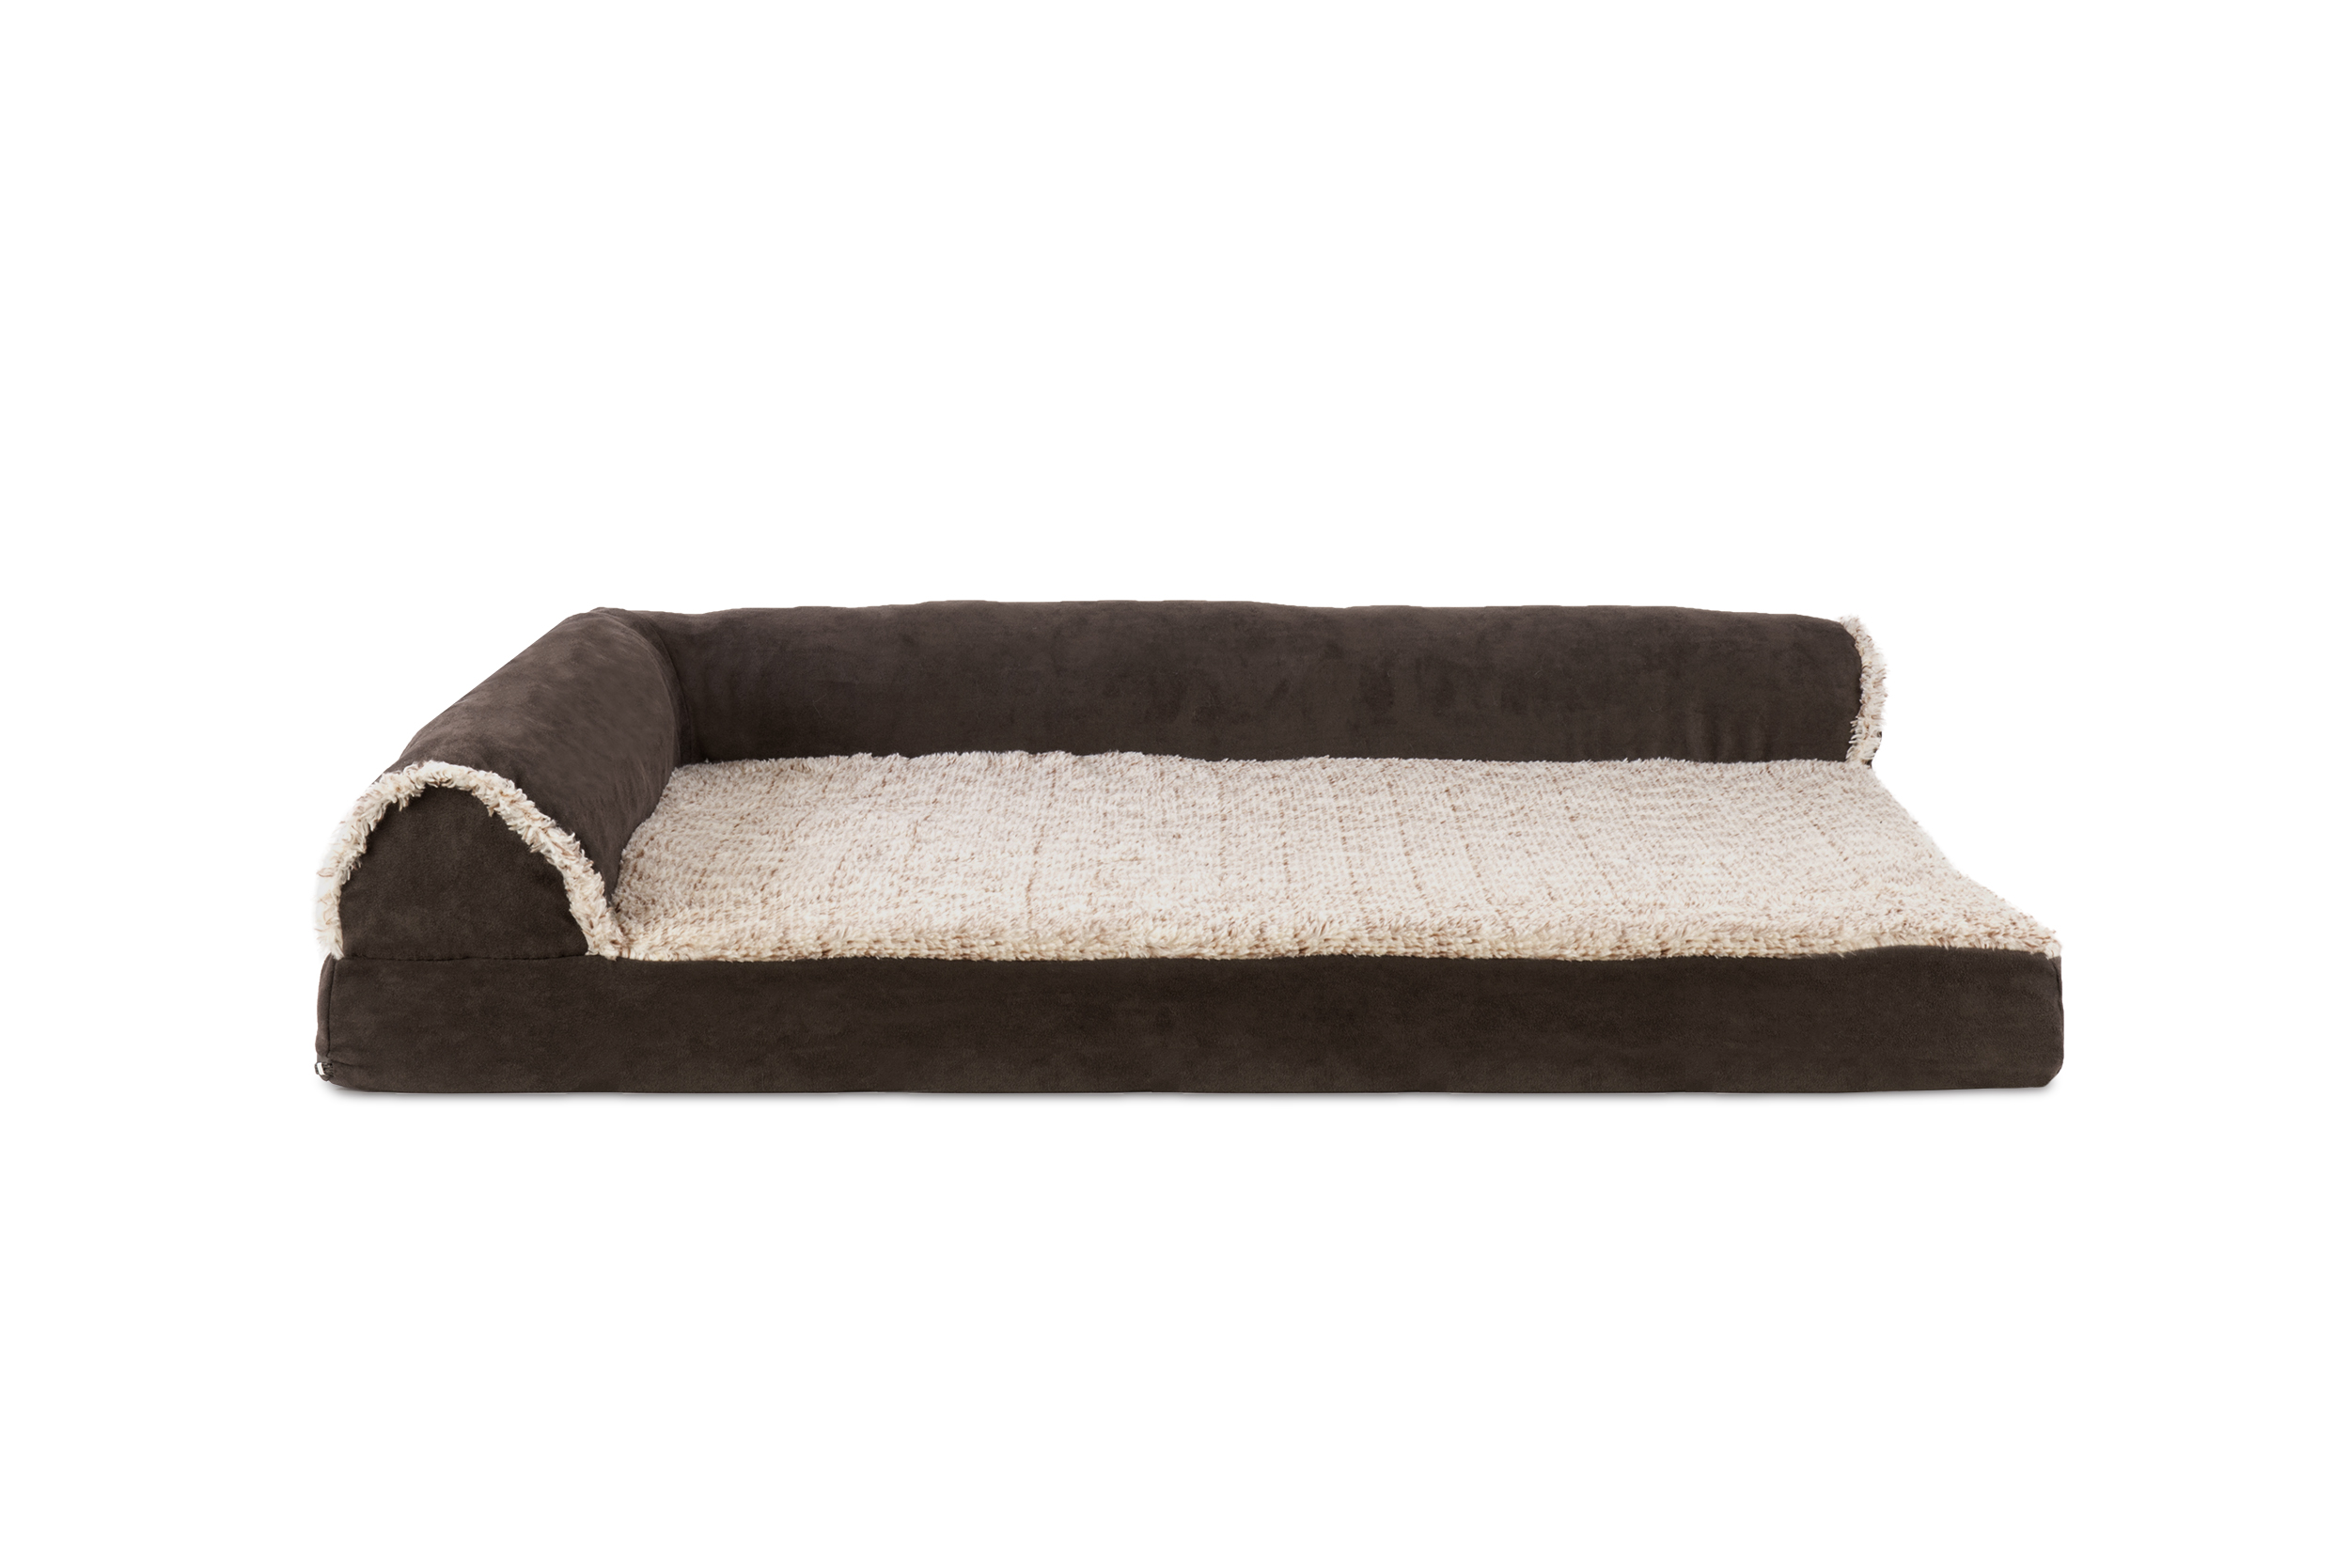 orthopedic sofa find sofas for sale two tone faux fur and suede deluxe chaise lounge